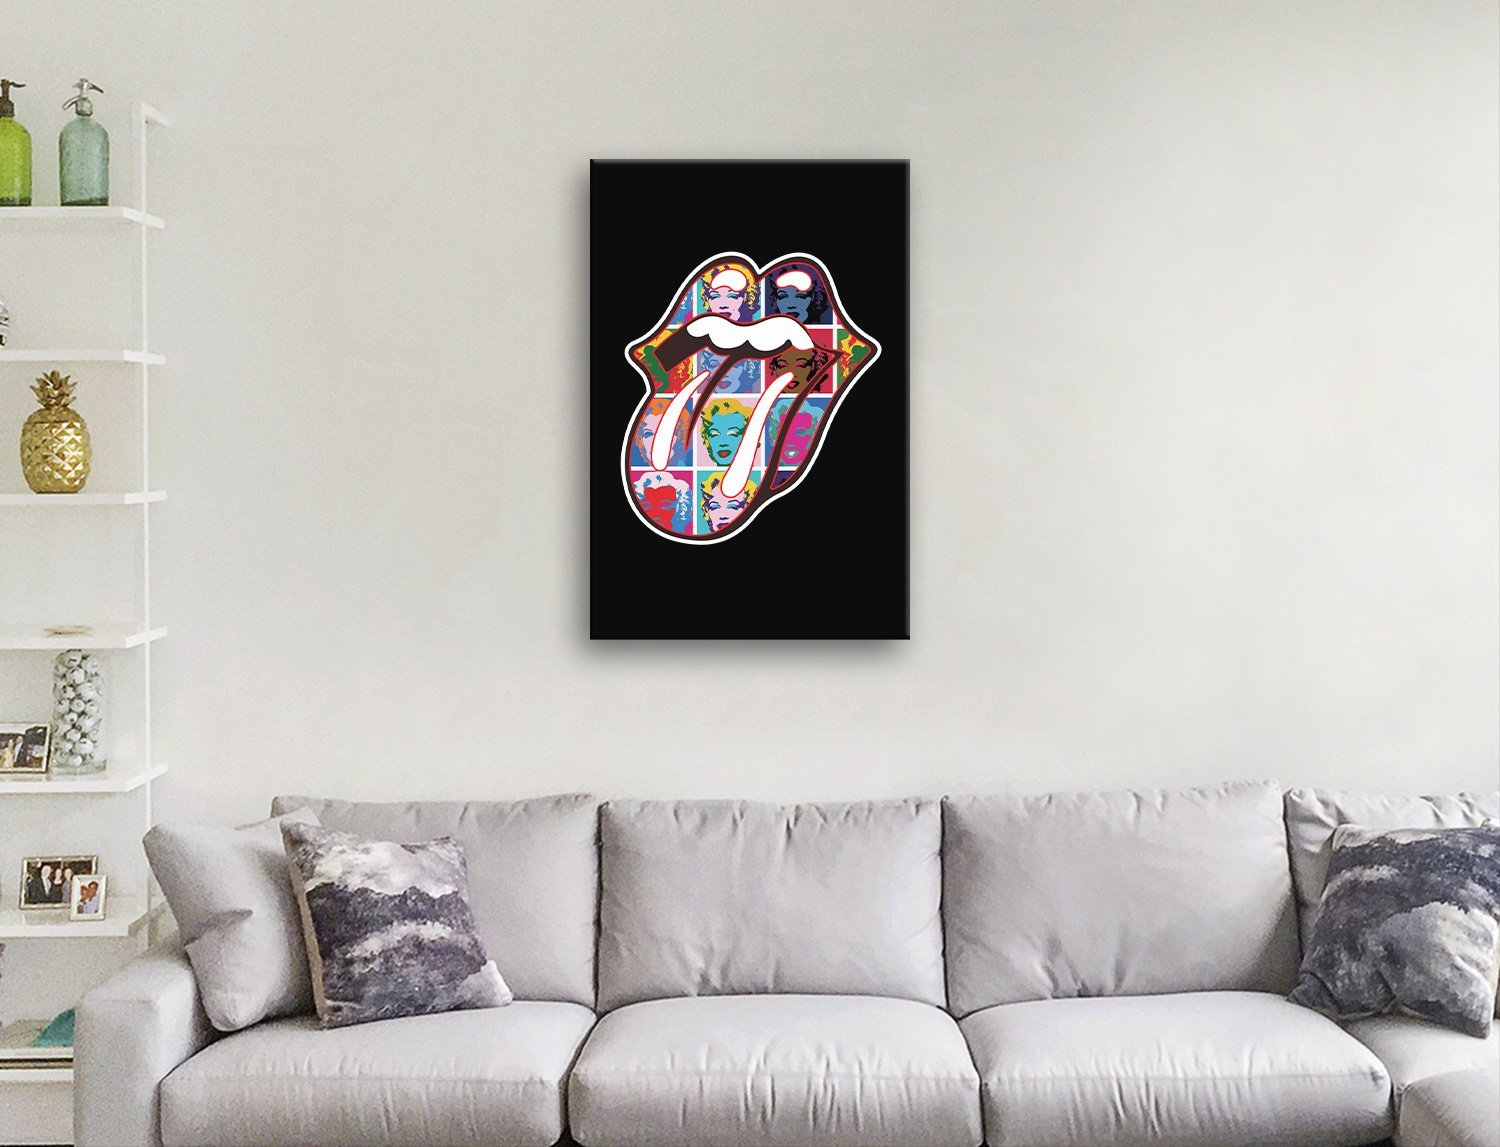 Affordable Iconic Pop Art Prints Gifts for Guys AU